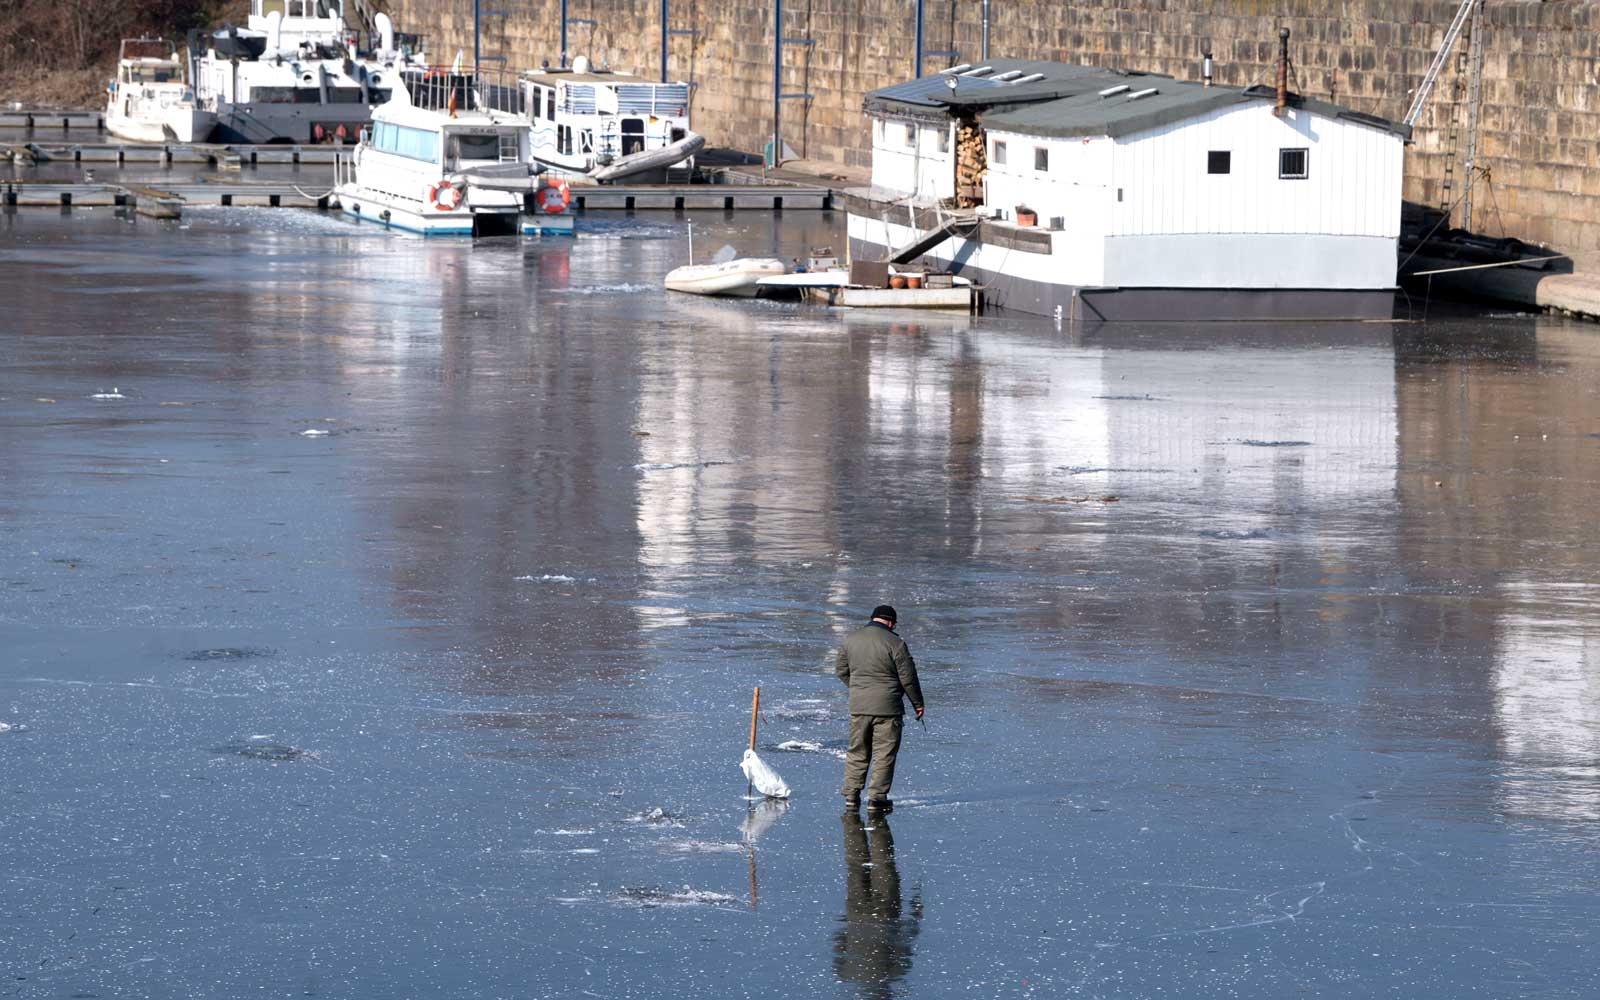 An ice fisherman stands on the ice of a frozen harbor basin of the Elbe in Dresden, Germany, on February 28, 2018